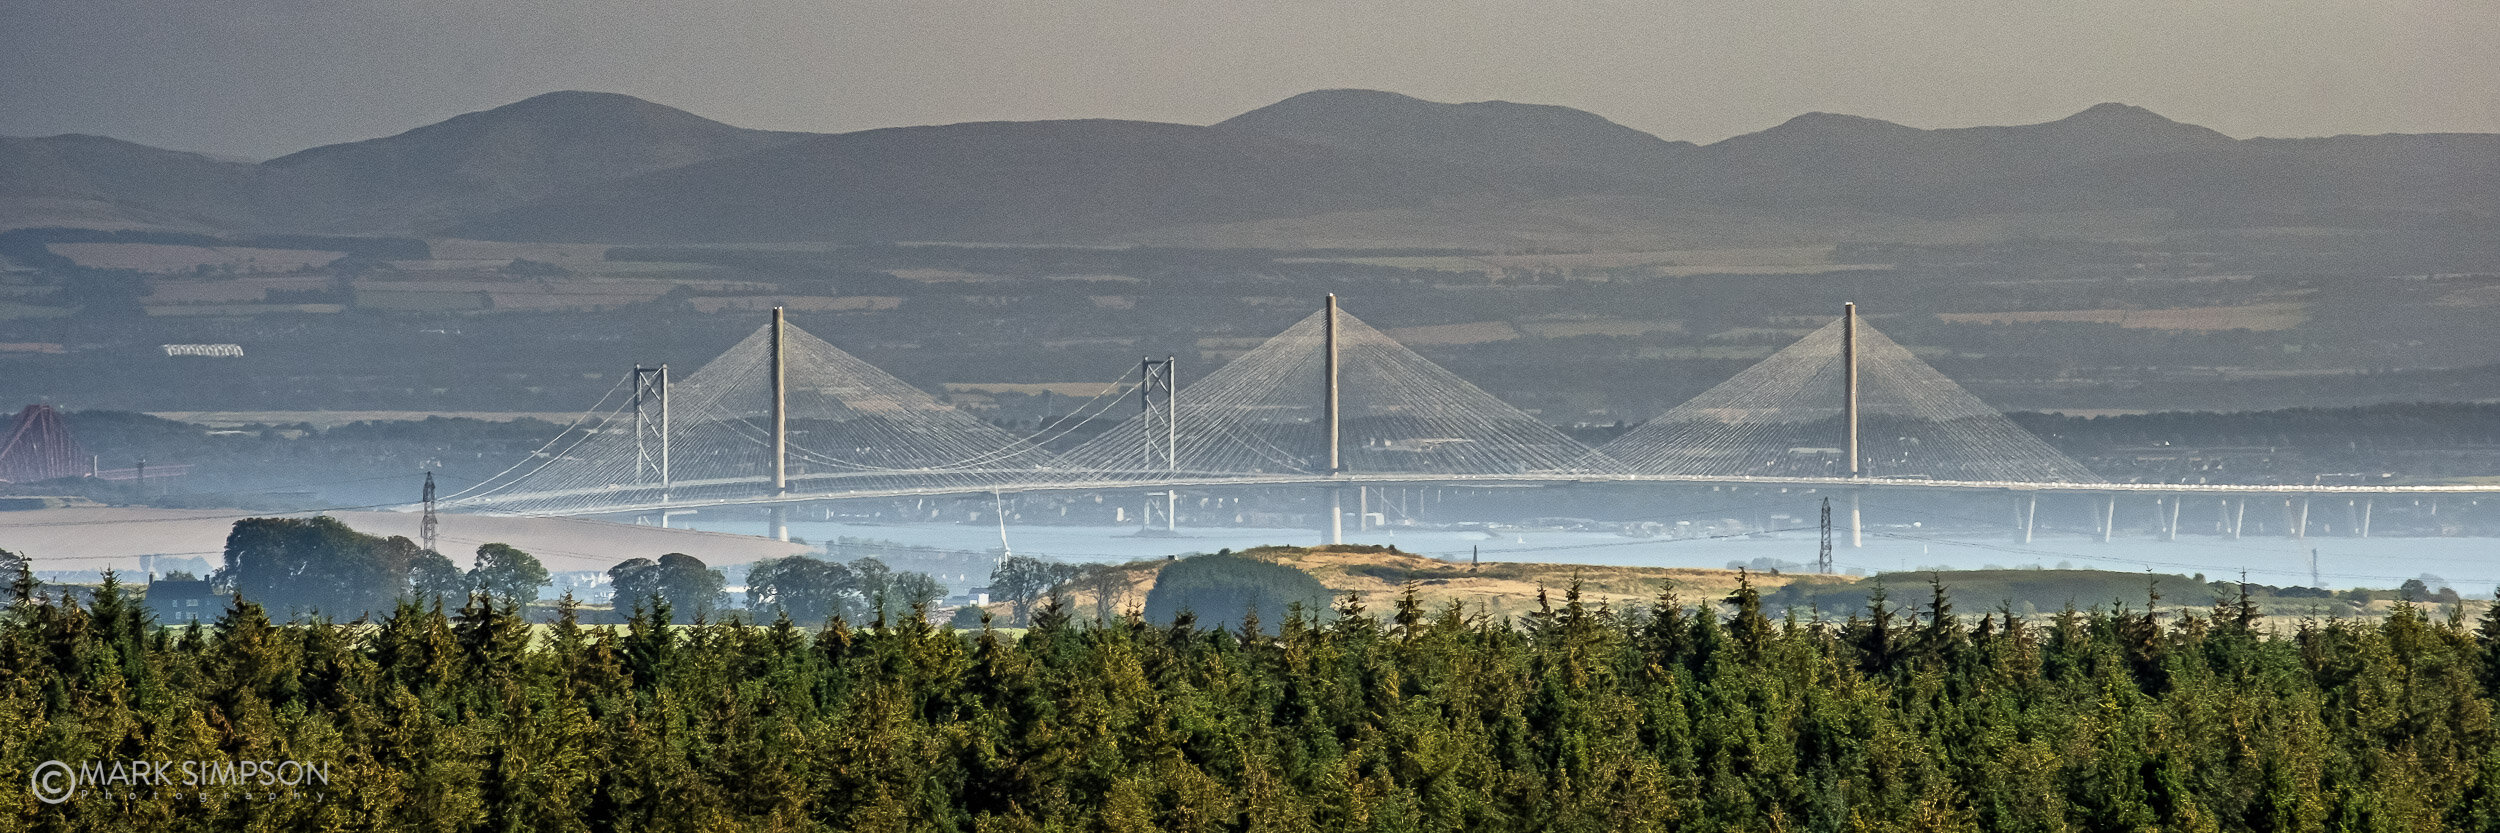 The Queensferry Crossing, the Forth Road Bridge and the Forth Rail Bridge